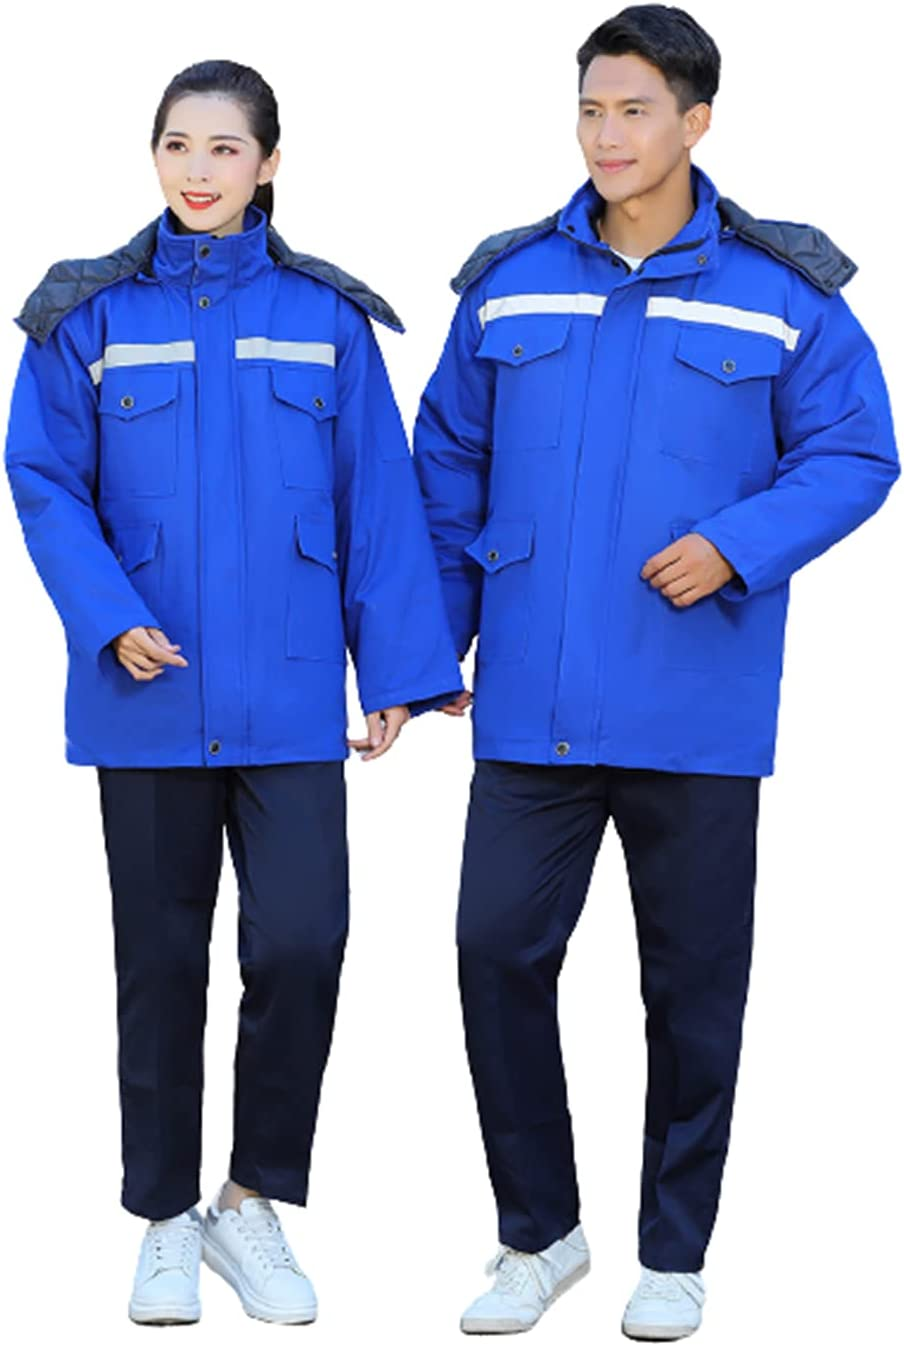 Winter Warm Jacket Long Sleeve Plus Size Work Clothing with Detachable Lining for Car Repair Workshop